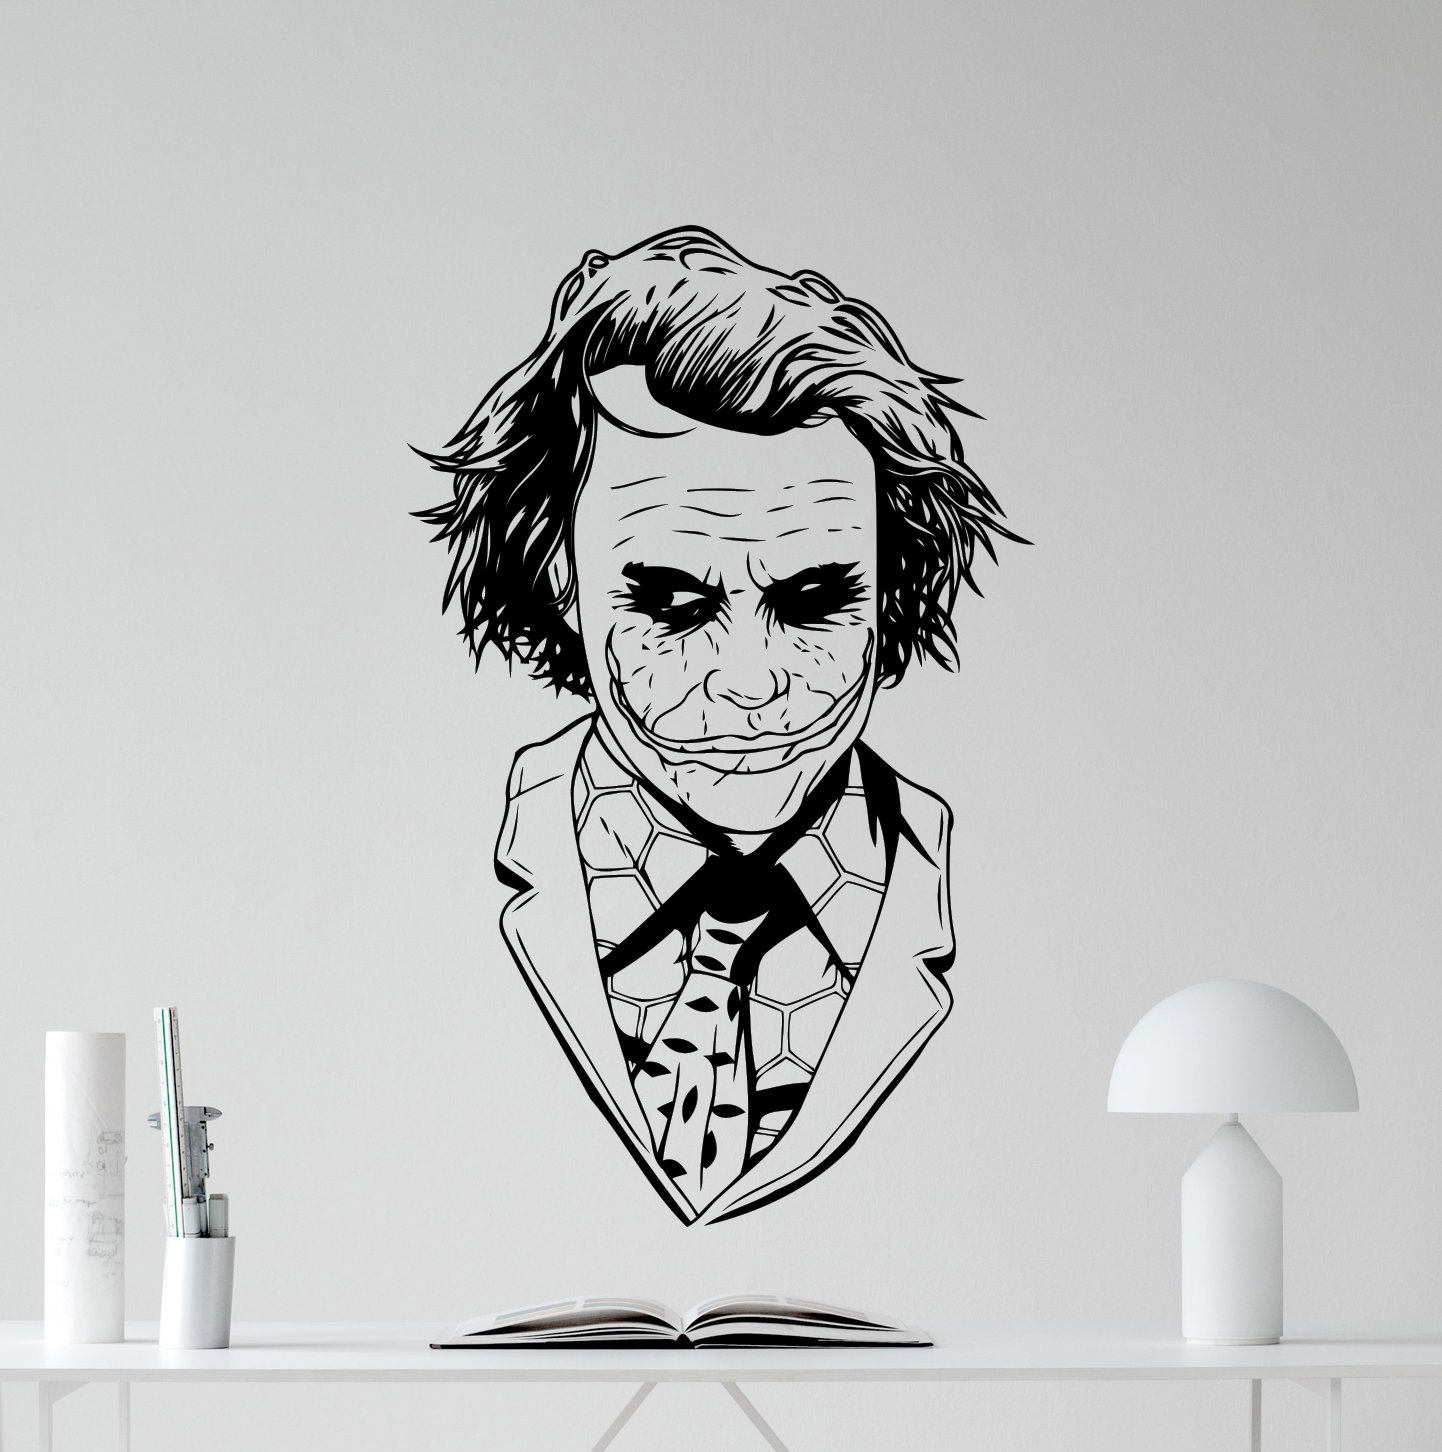 Amazon com joker wall decal superhero vinyl sticker why so serious marvel comics wall art design housewares kids room bedroom decor removable wall mural